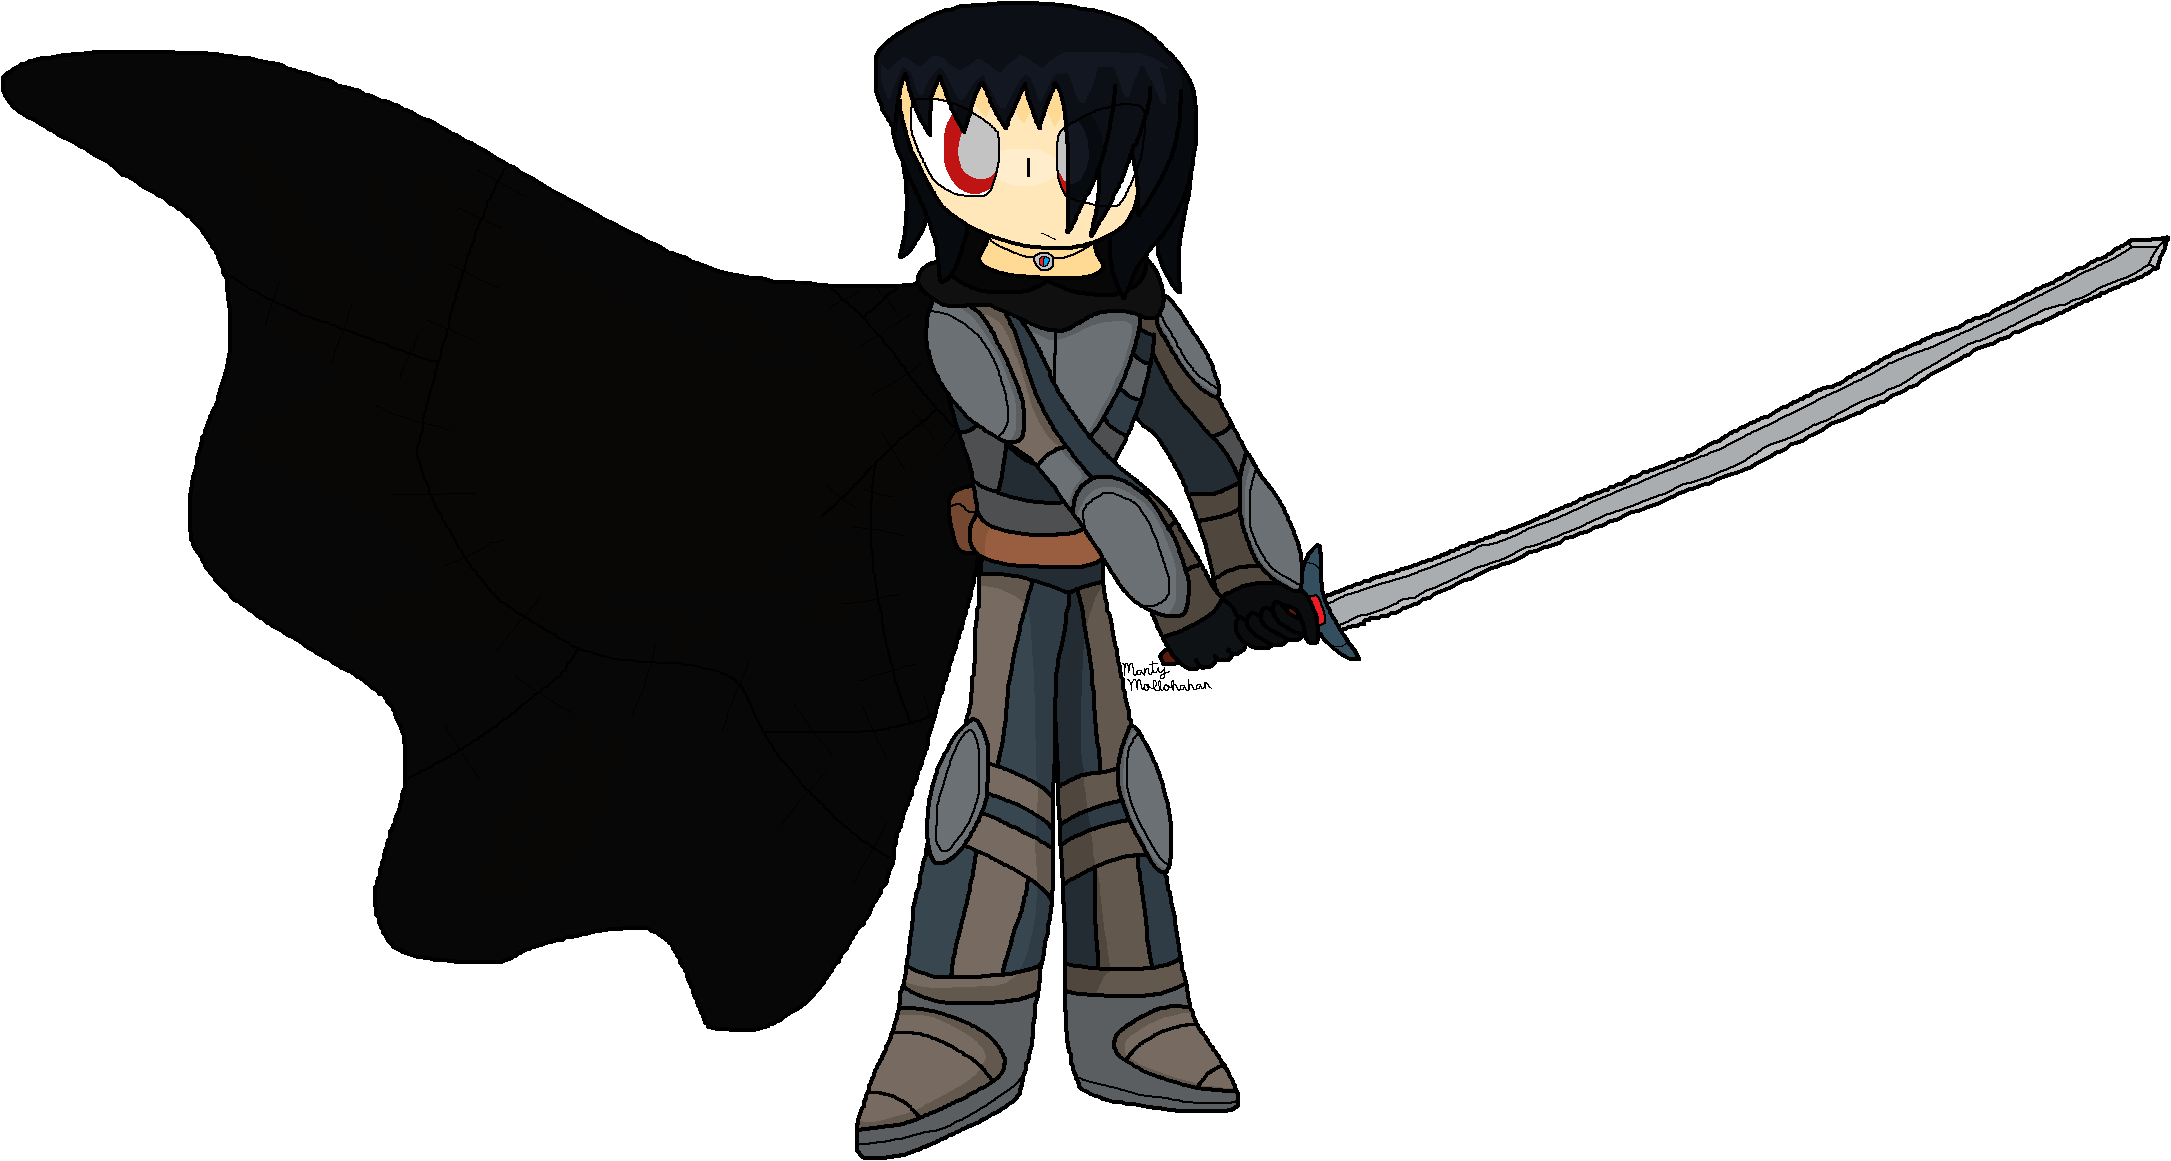 [Image: battle_chronicler__au__by_chronicle_king-da4v0mk.png]